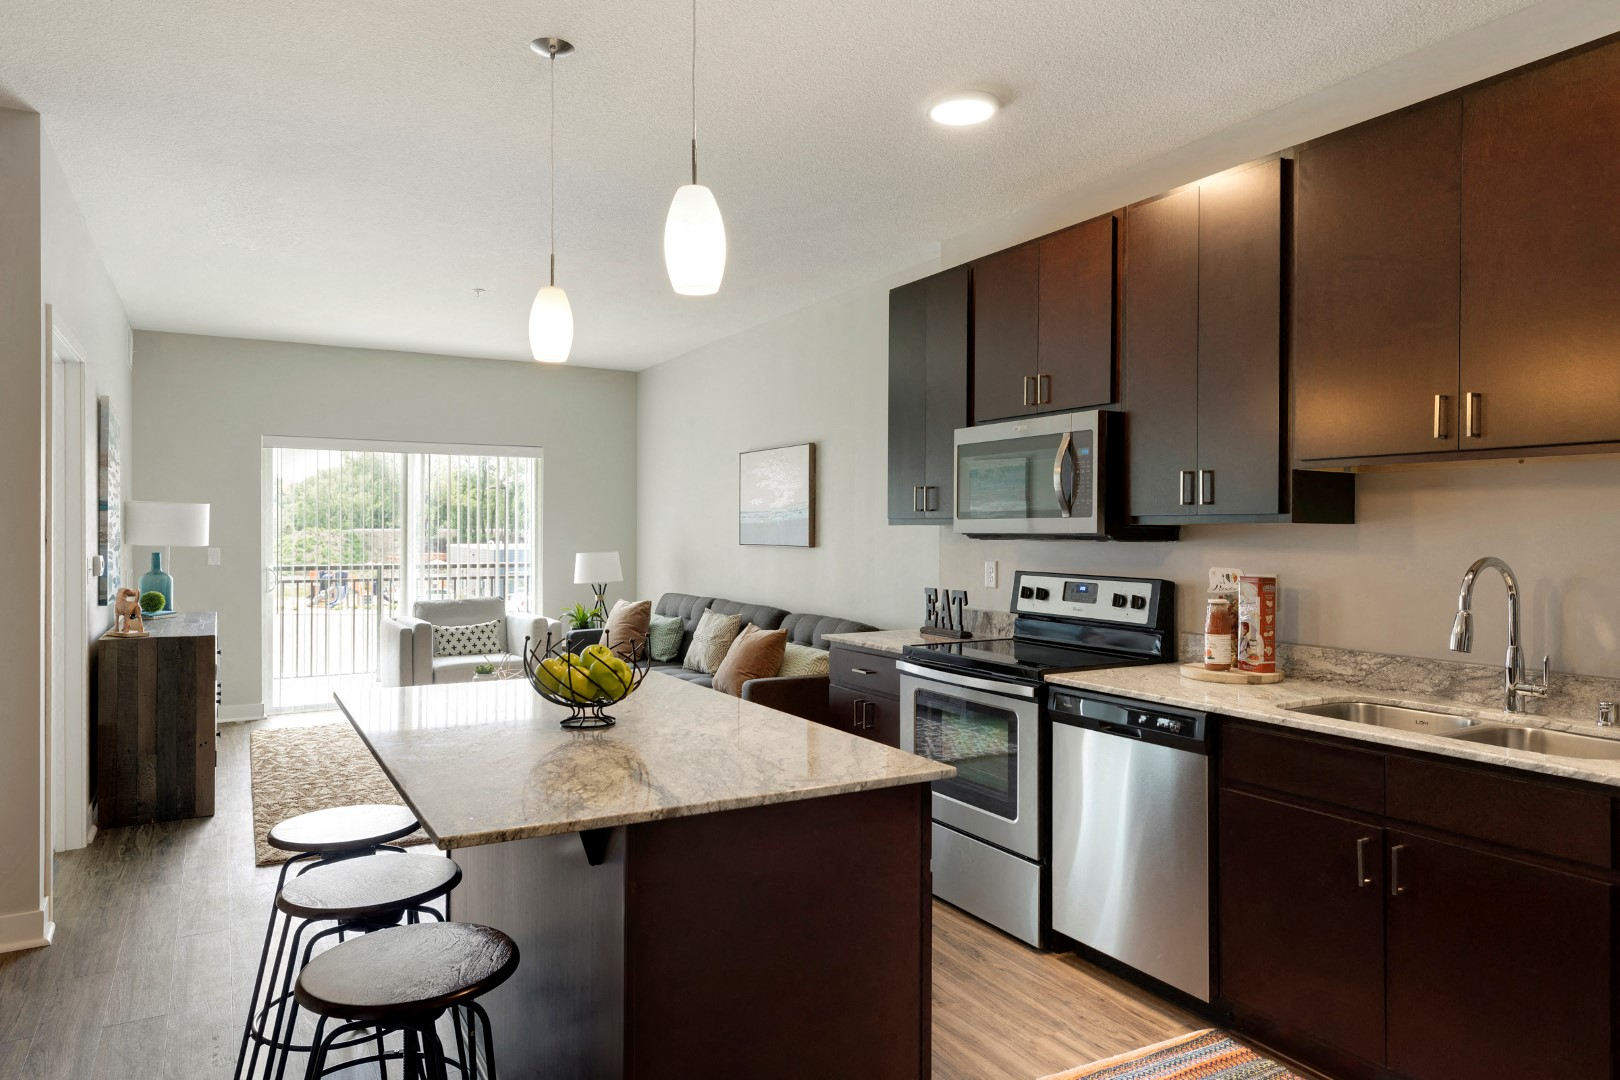 kitchen and living w/balcony at the liberty townhomes in golden valley mn